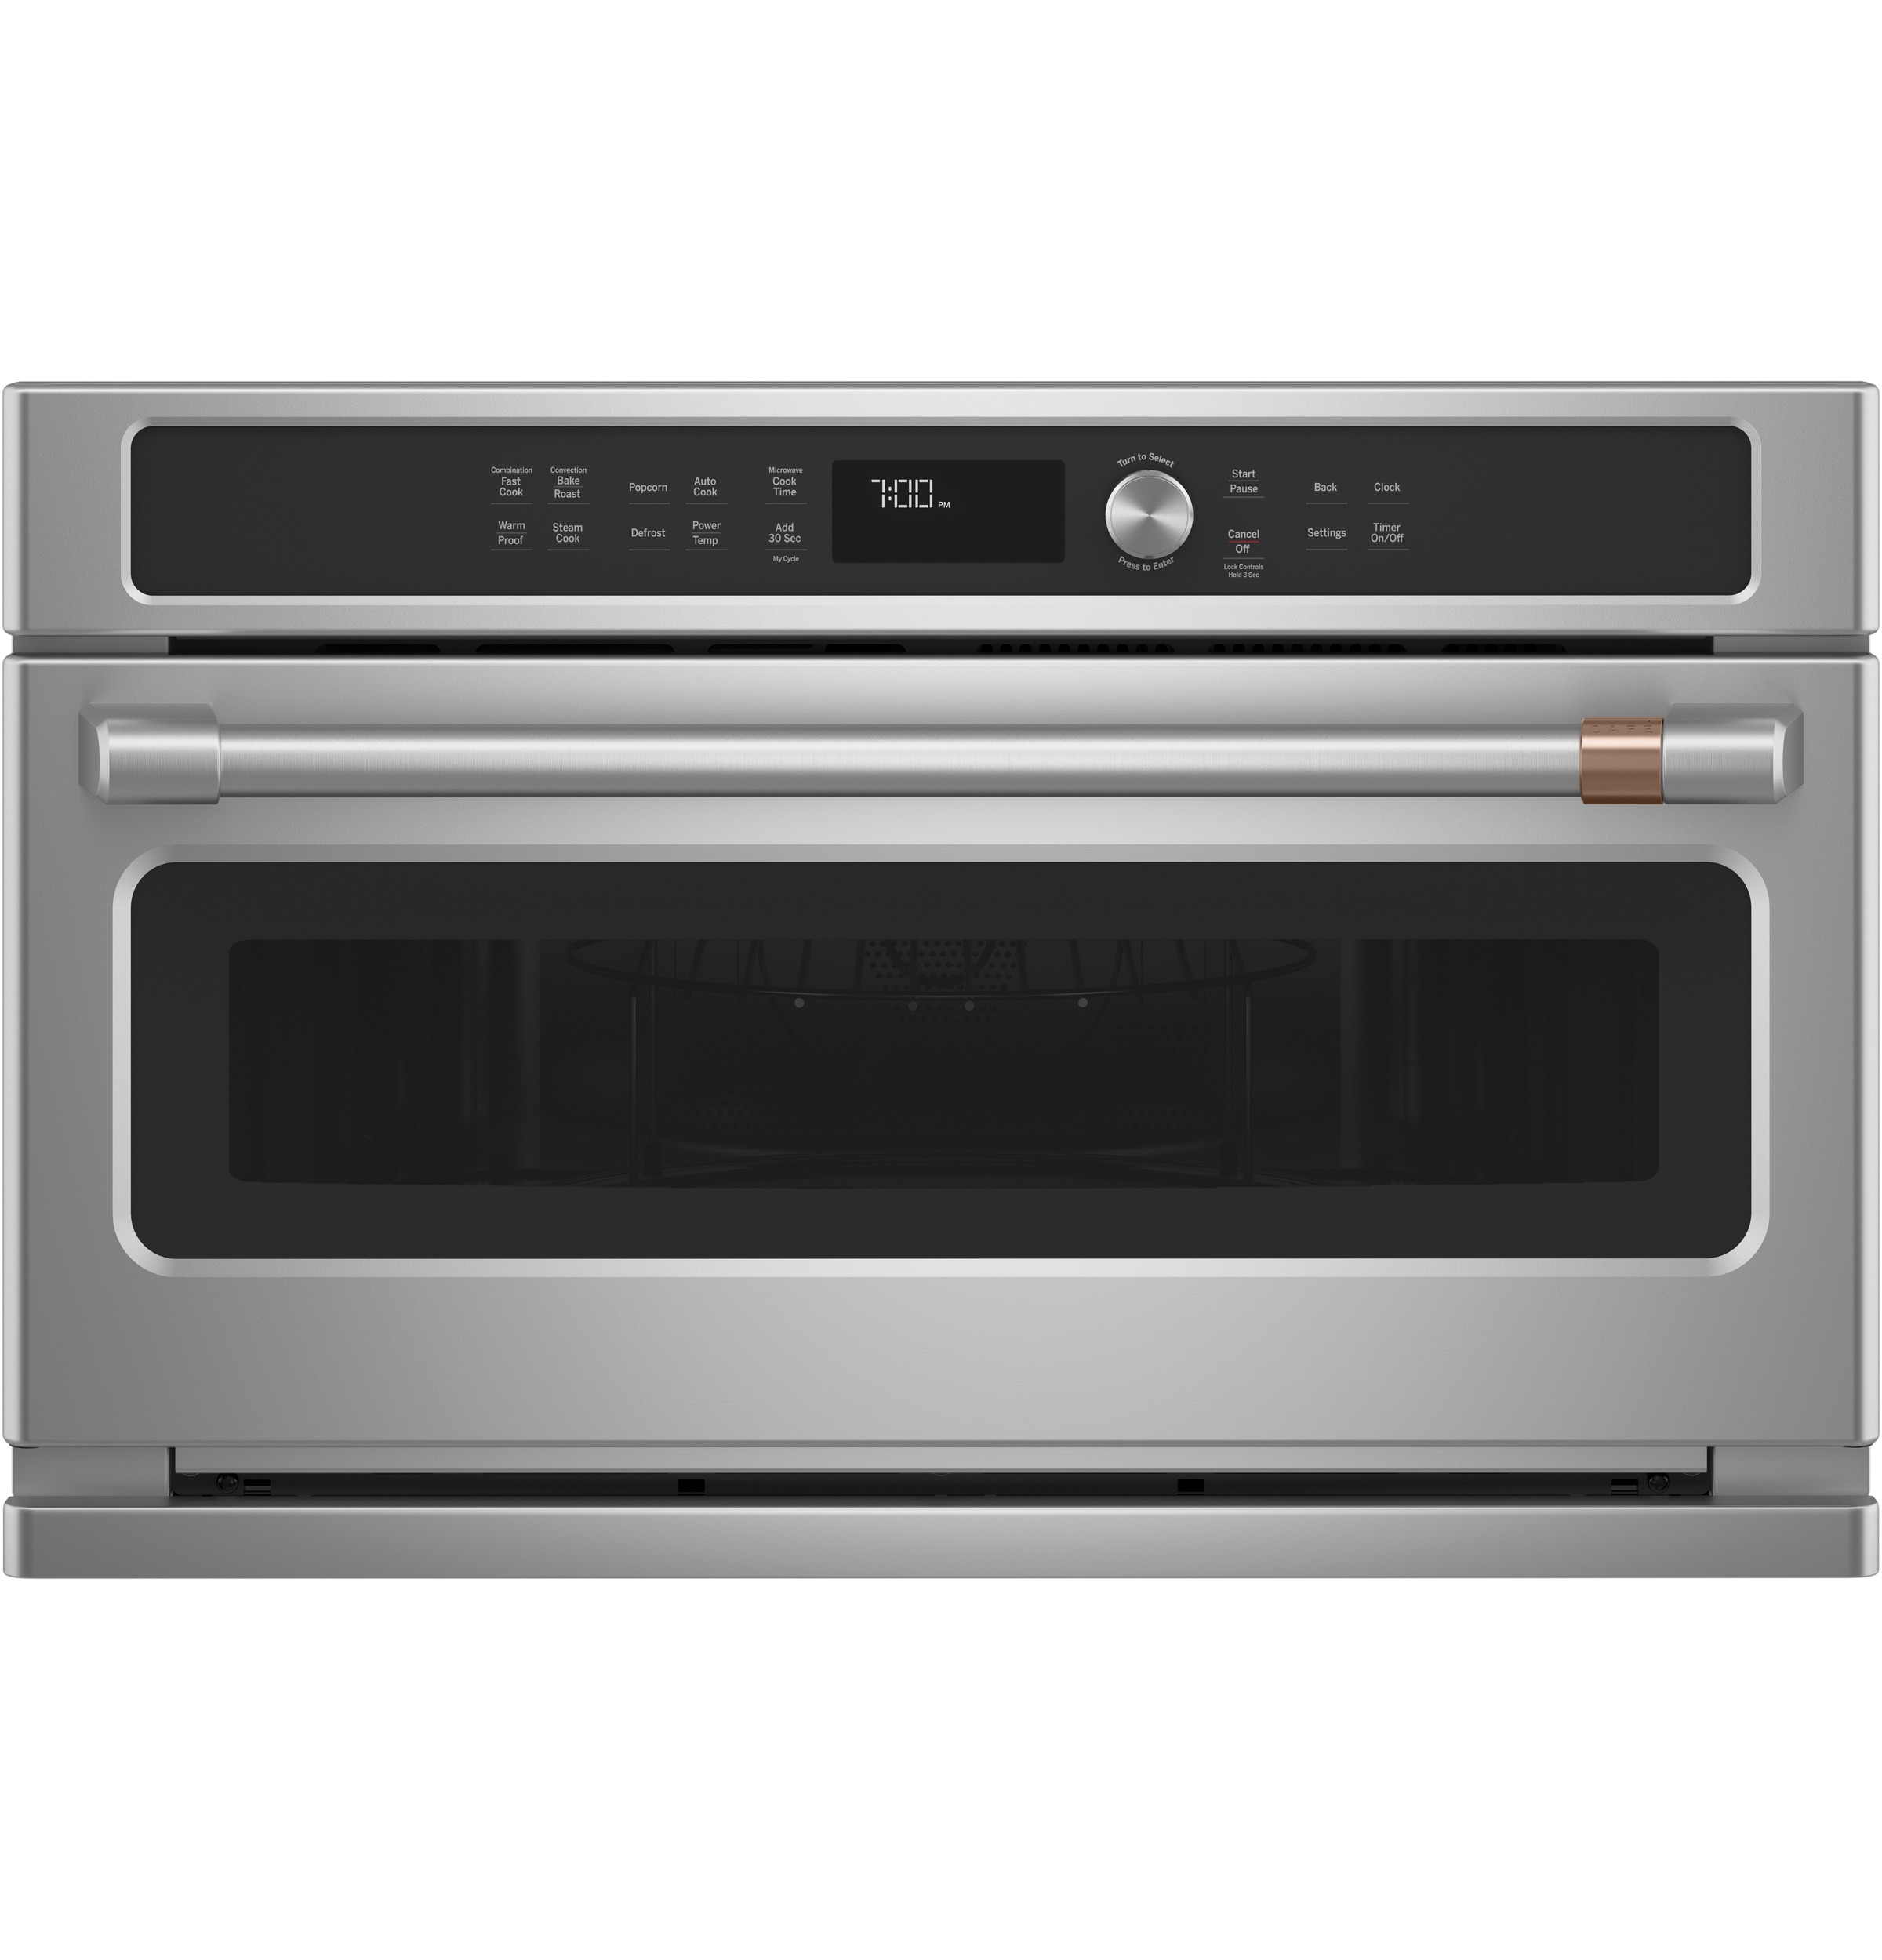 Cafe Café™ Built-In Microwave/Convection Oven